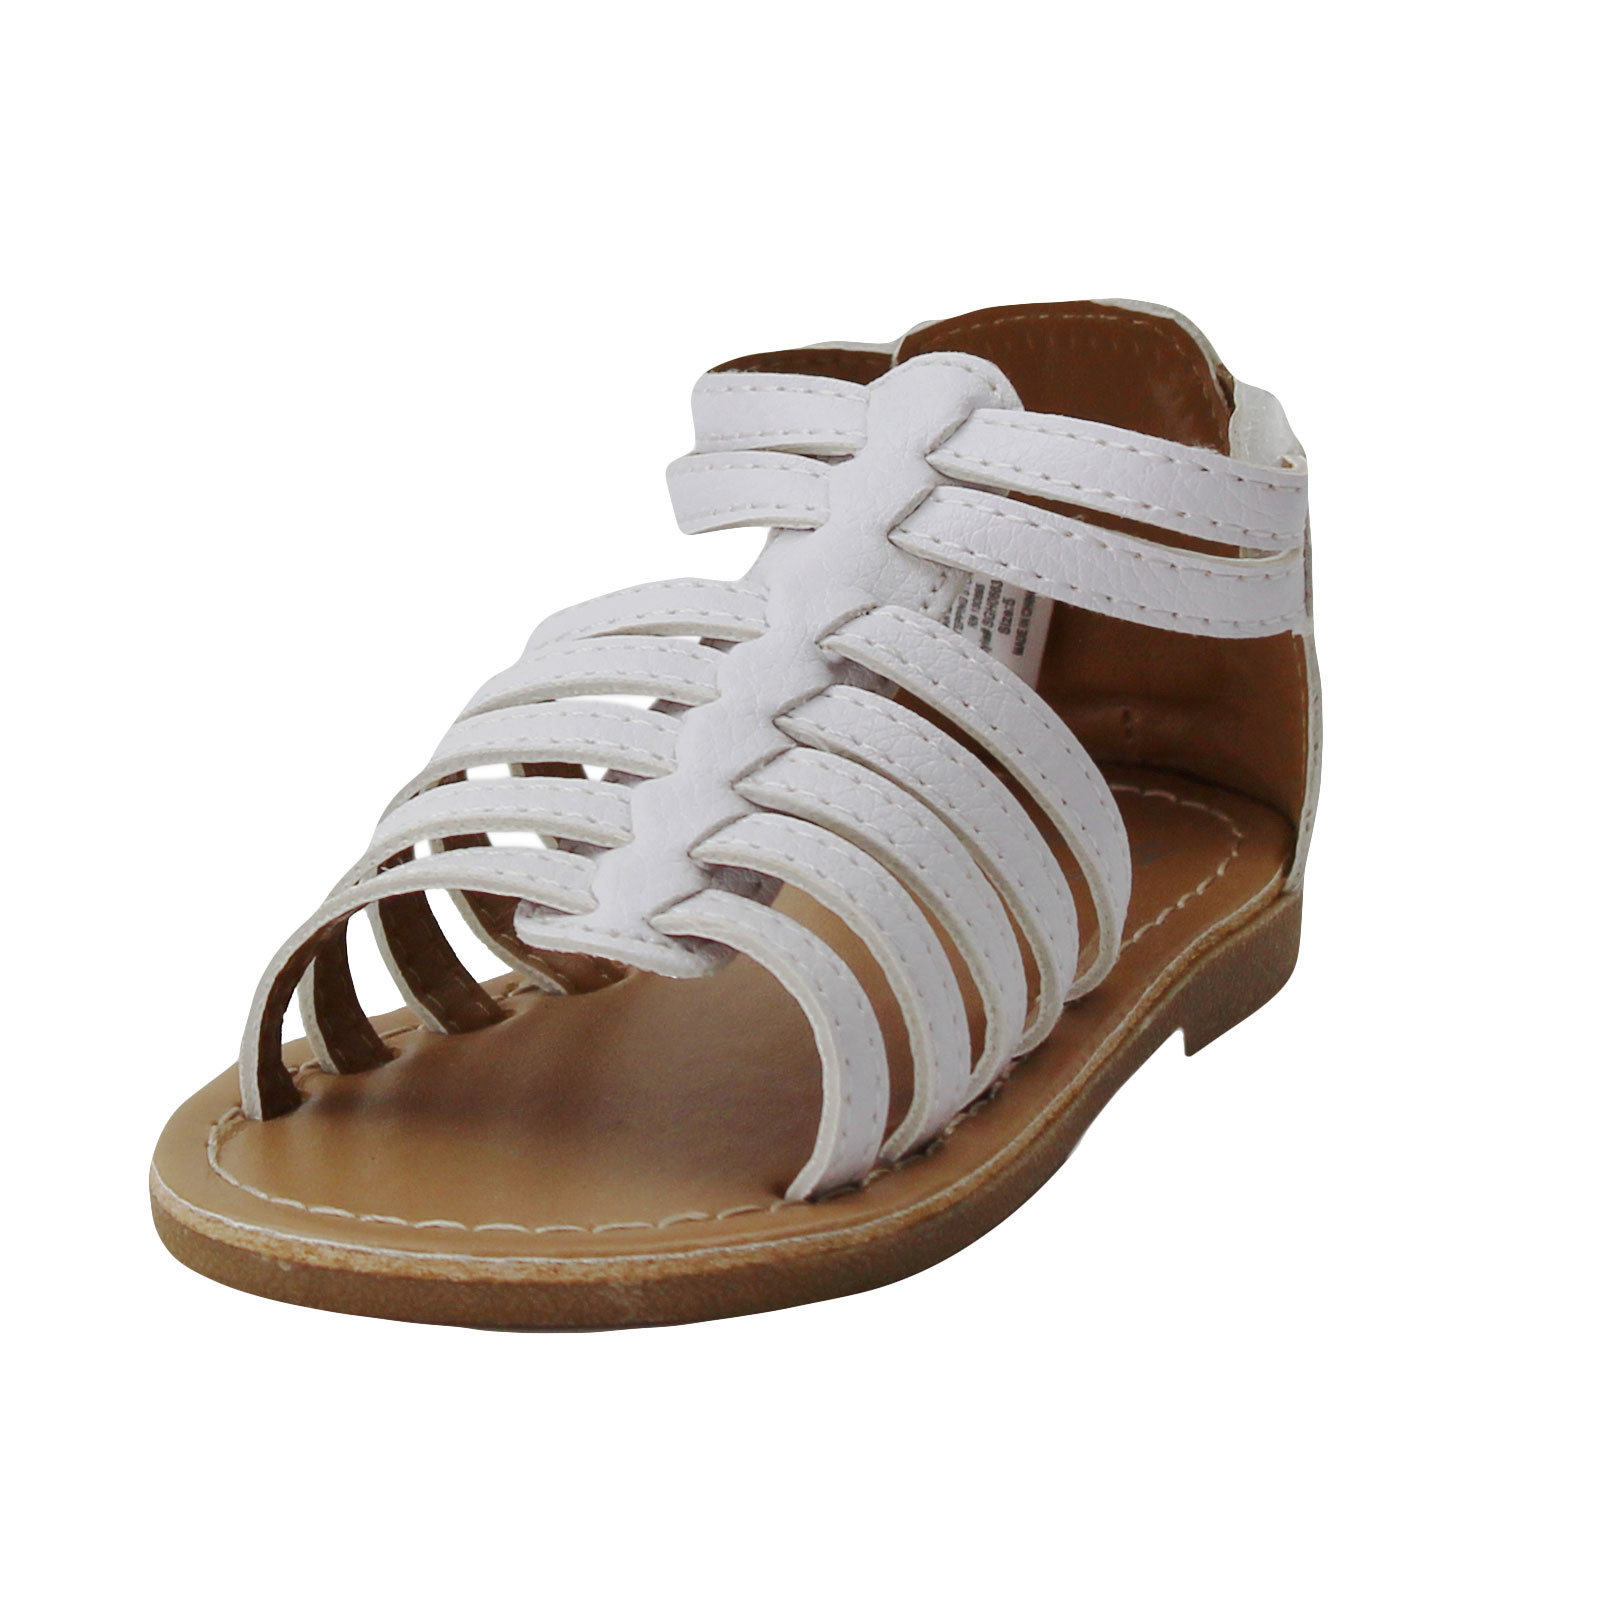 Stepping Stones Little Girls Gladiator White Sandals Girls Strappy